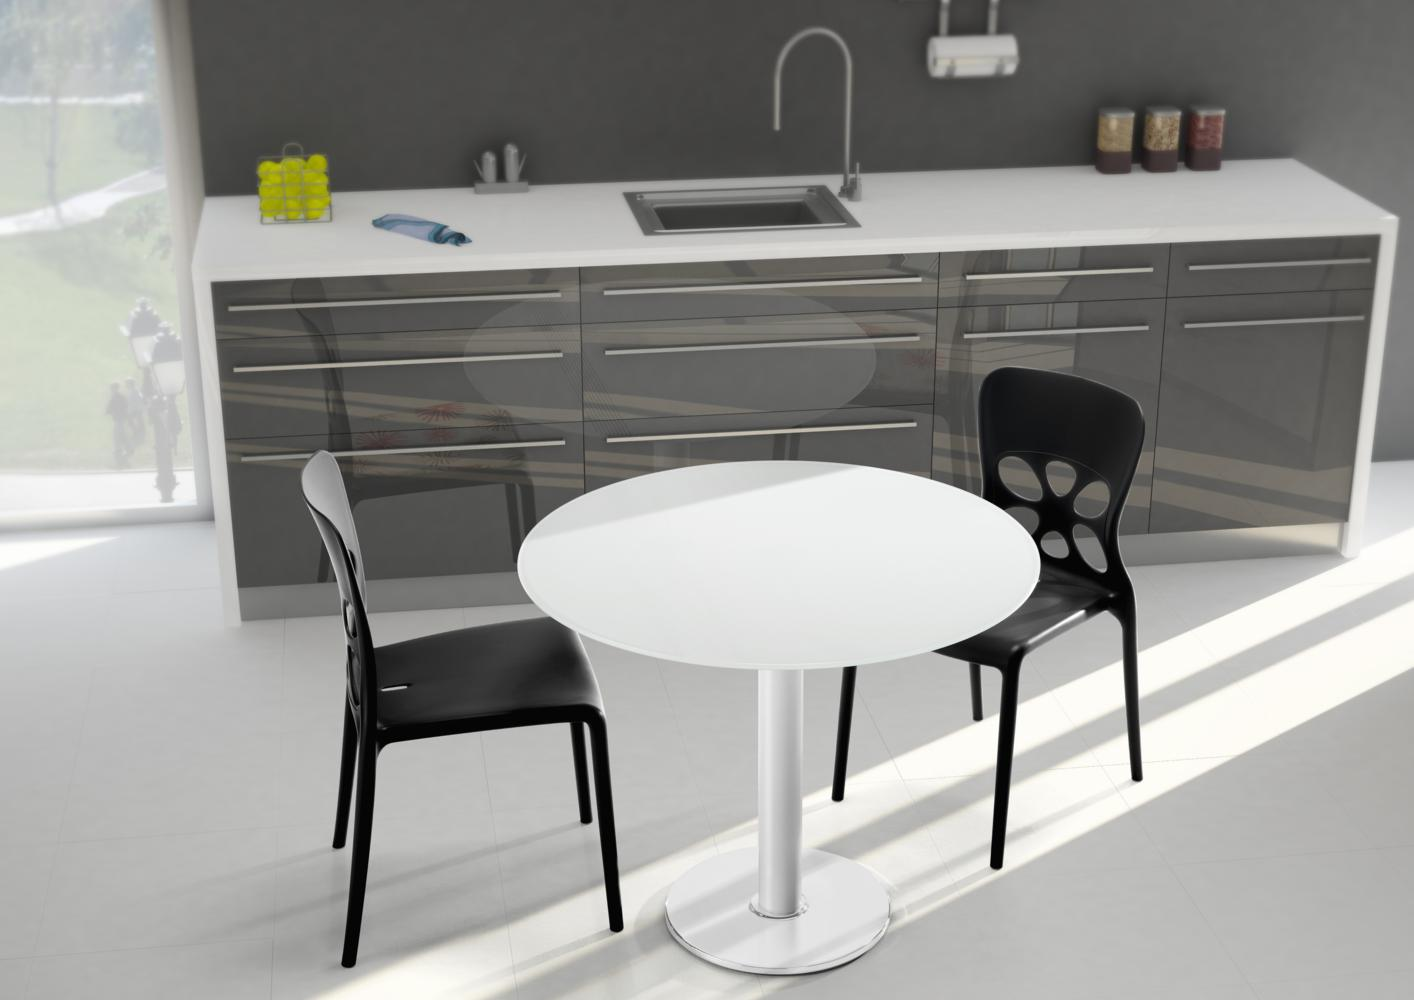 acheter votre table ronde contemporaine chez simeuble. Black Bedroom Furniture Sets. Home Design Ideas